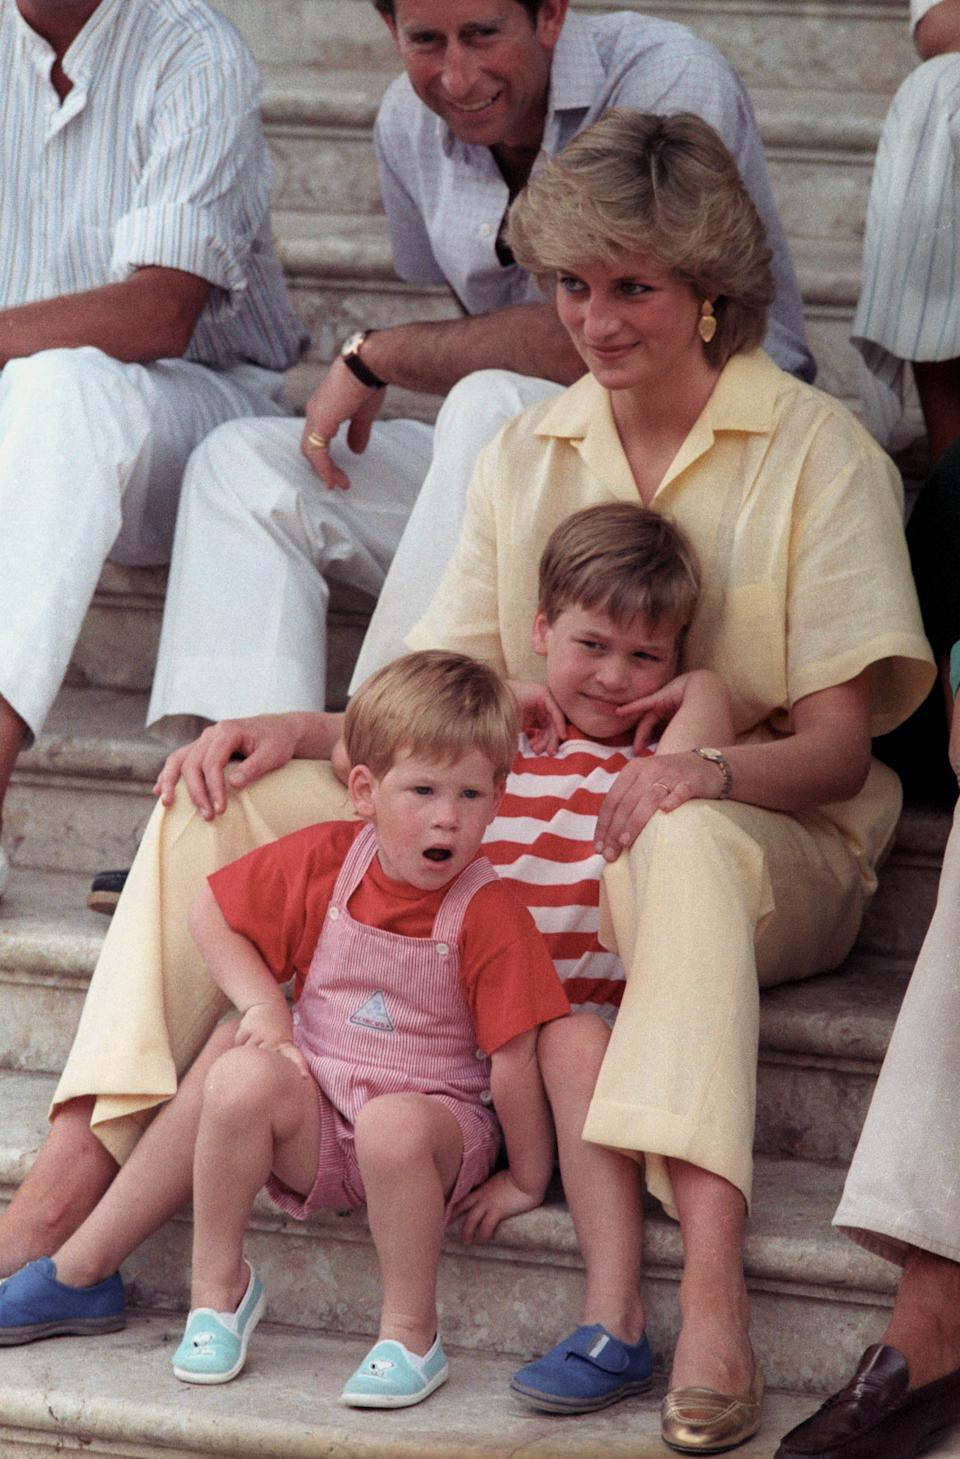 Princess Diana with her two sons Prince William, 6, and Prince Harry, 3, (front) as they pose during the morning's picture session on August 9, 1987 in Palma de Mallorca, Spain.  REUTERS/Hugh Peralta